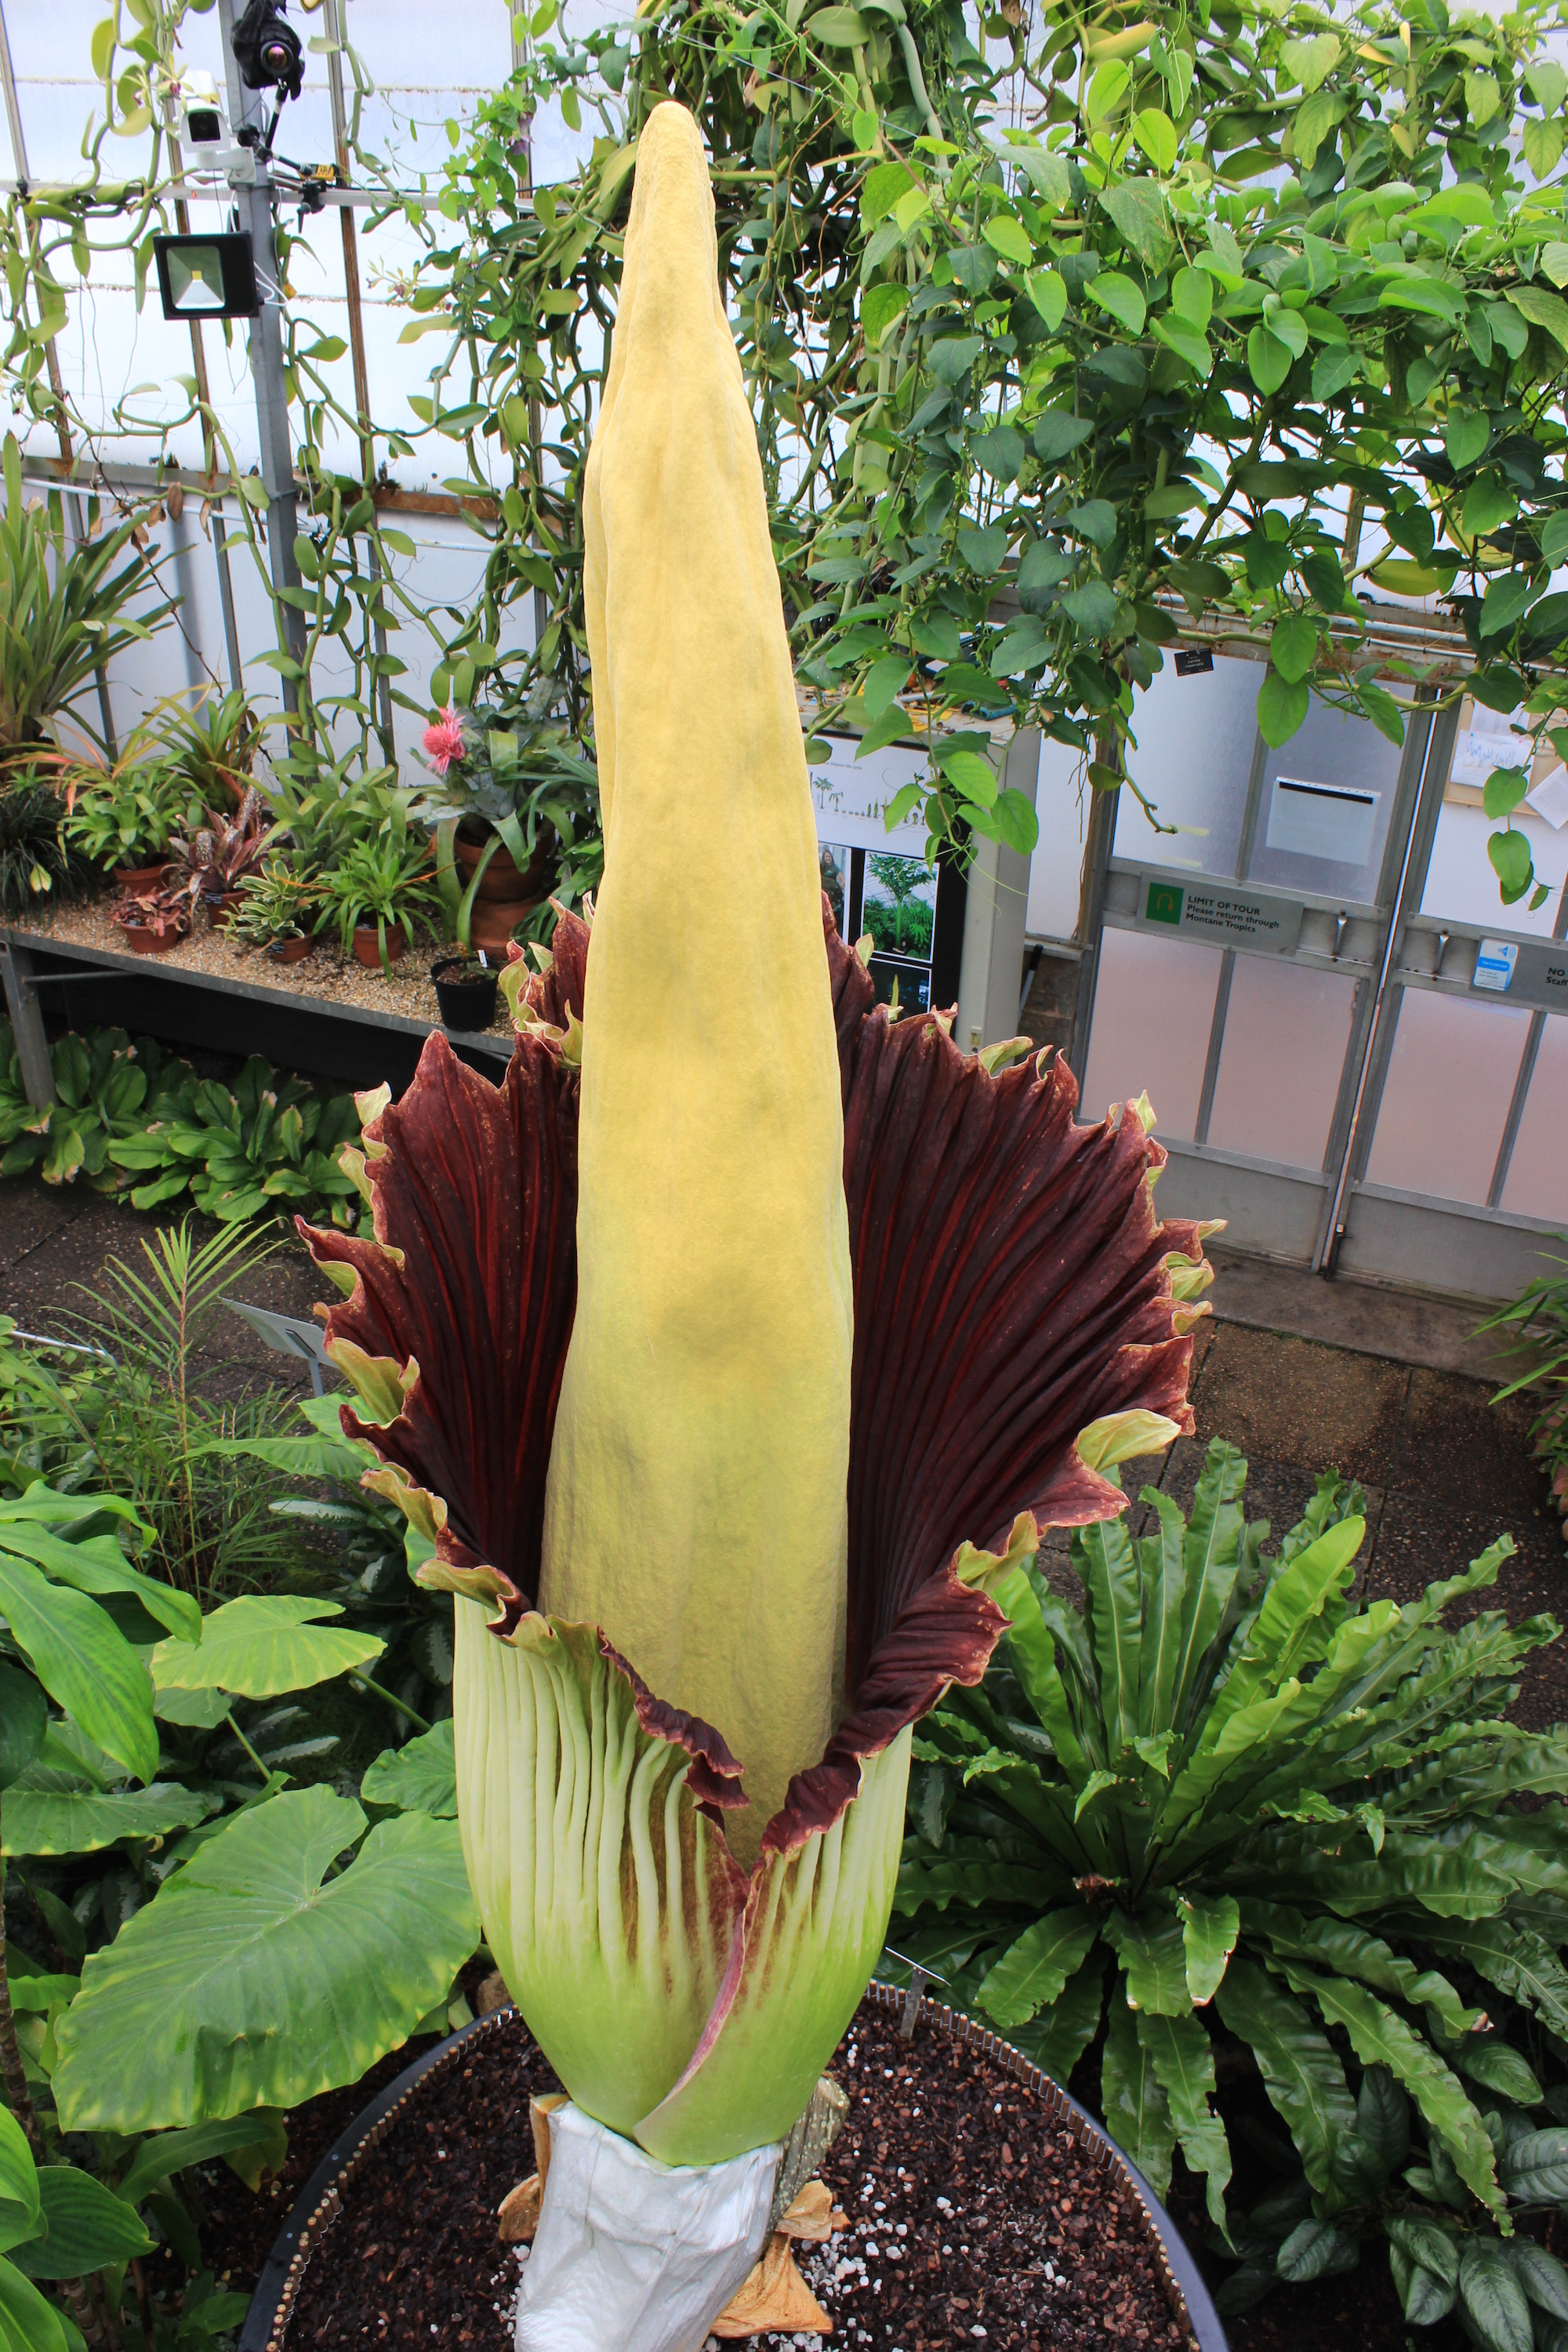 Titan arum in flower at the Botanics for the first time.